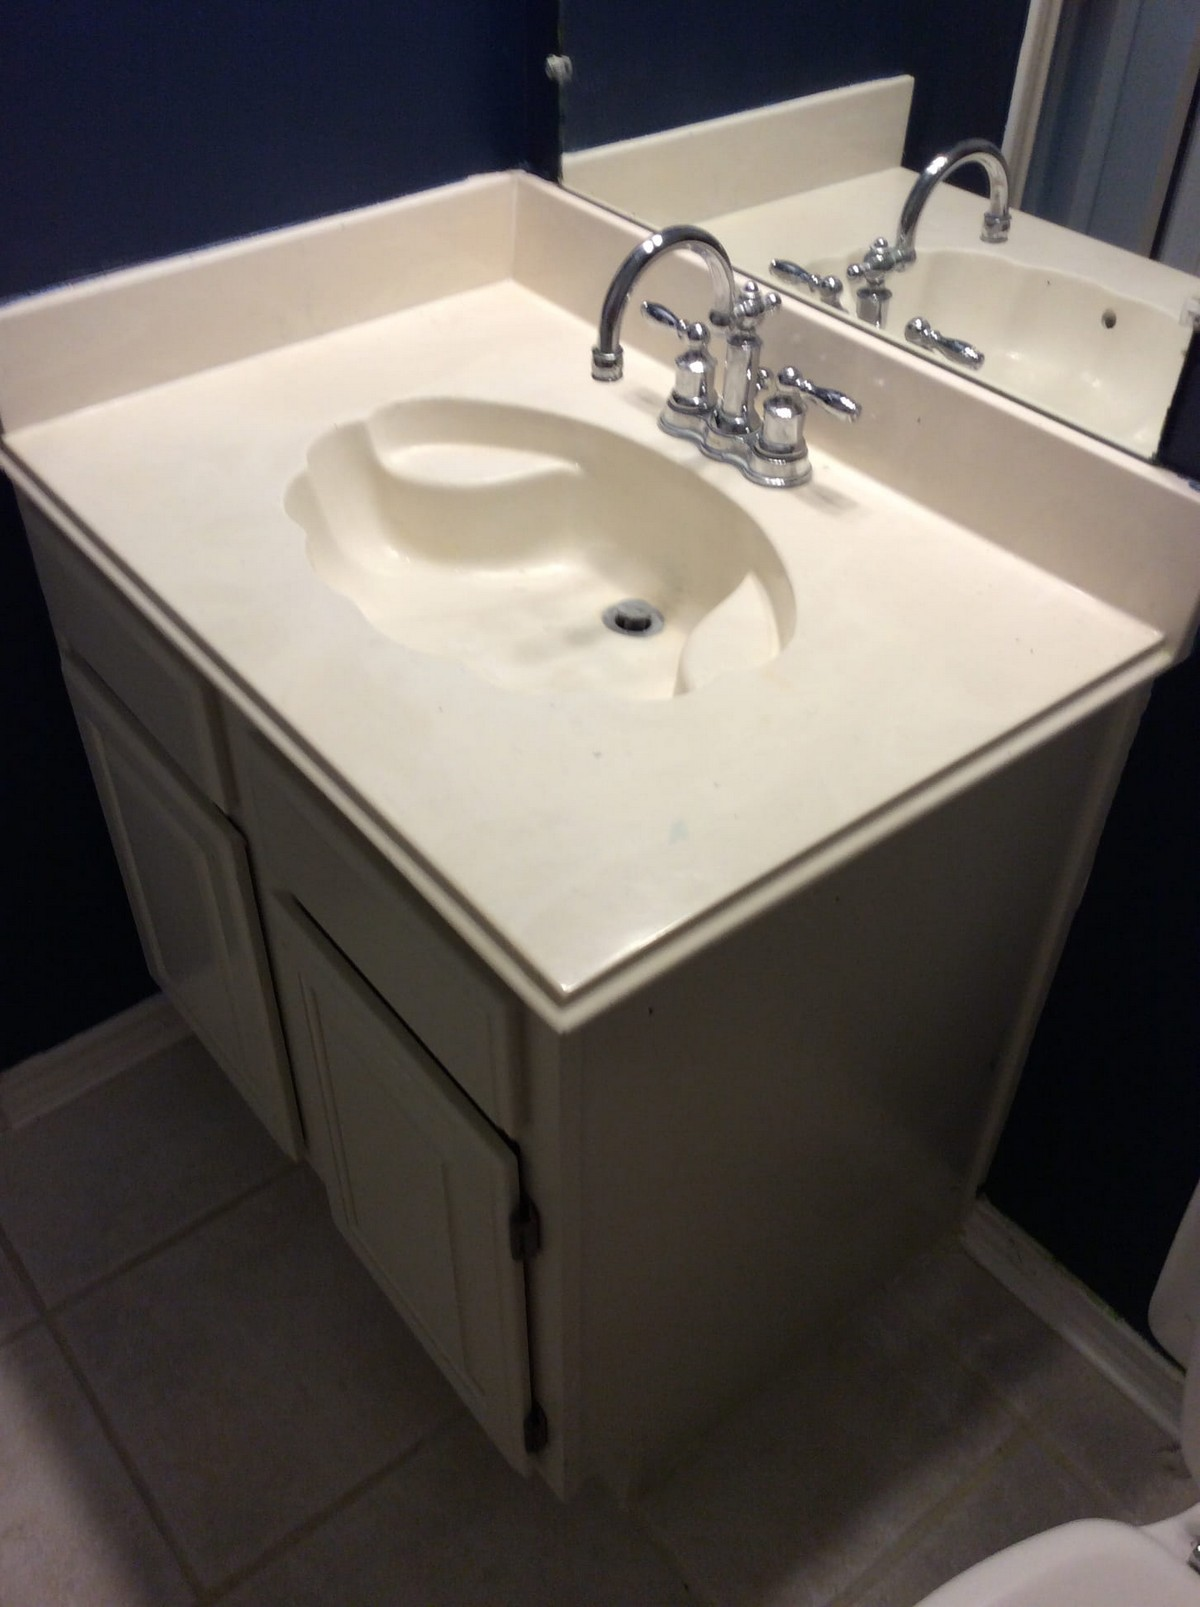 Euless bathroom remodel